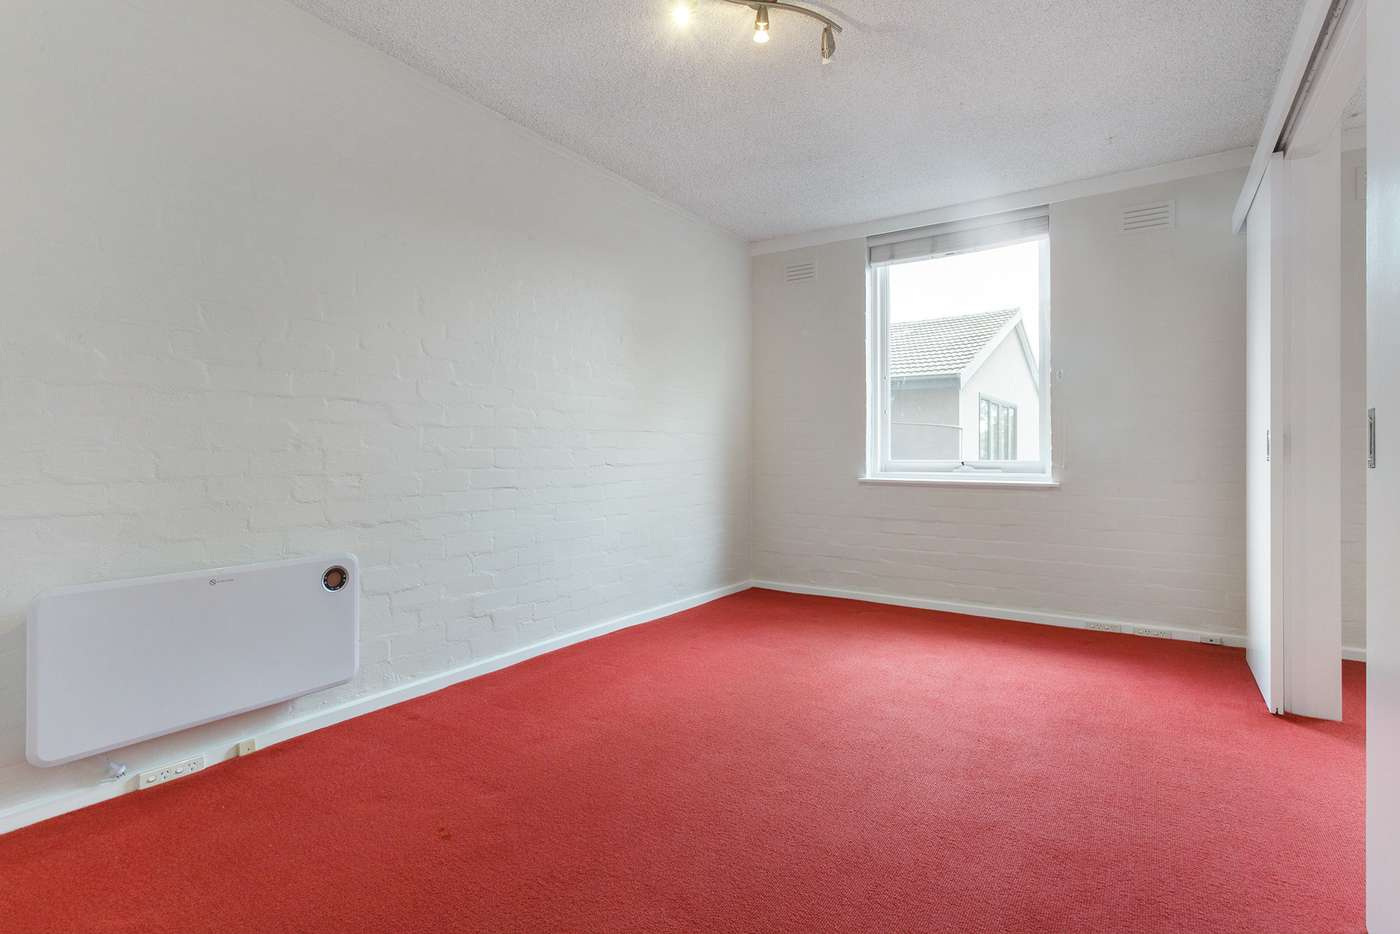 Main view of Homely apartment listing, 17/9-11 Barnsbury Road, South Yarra VIC 3141